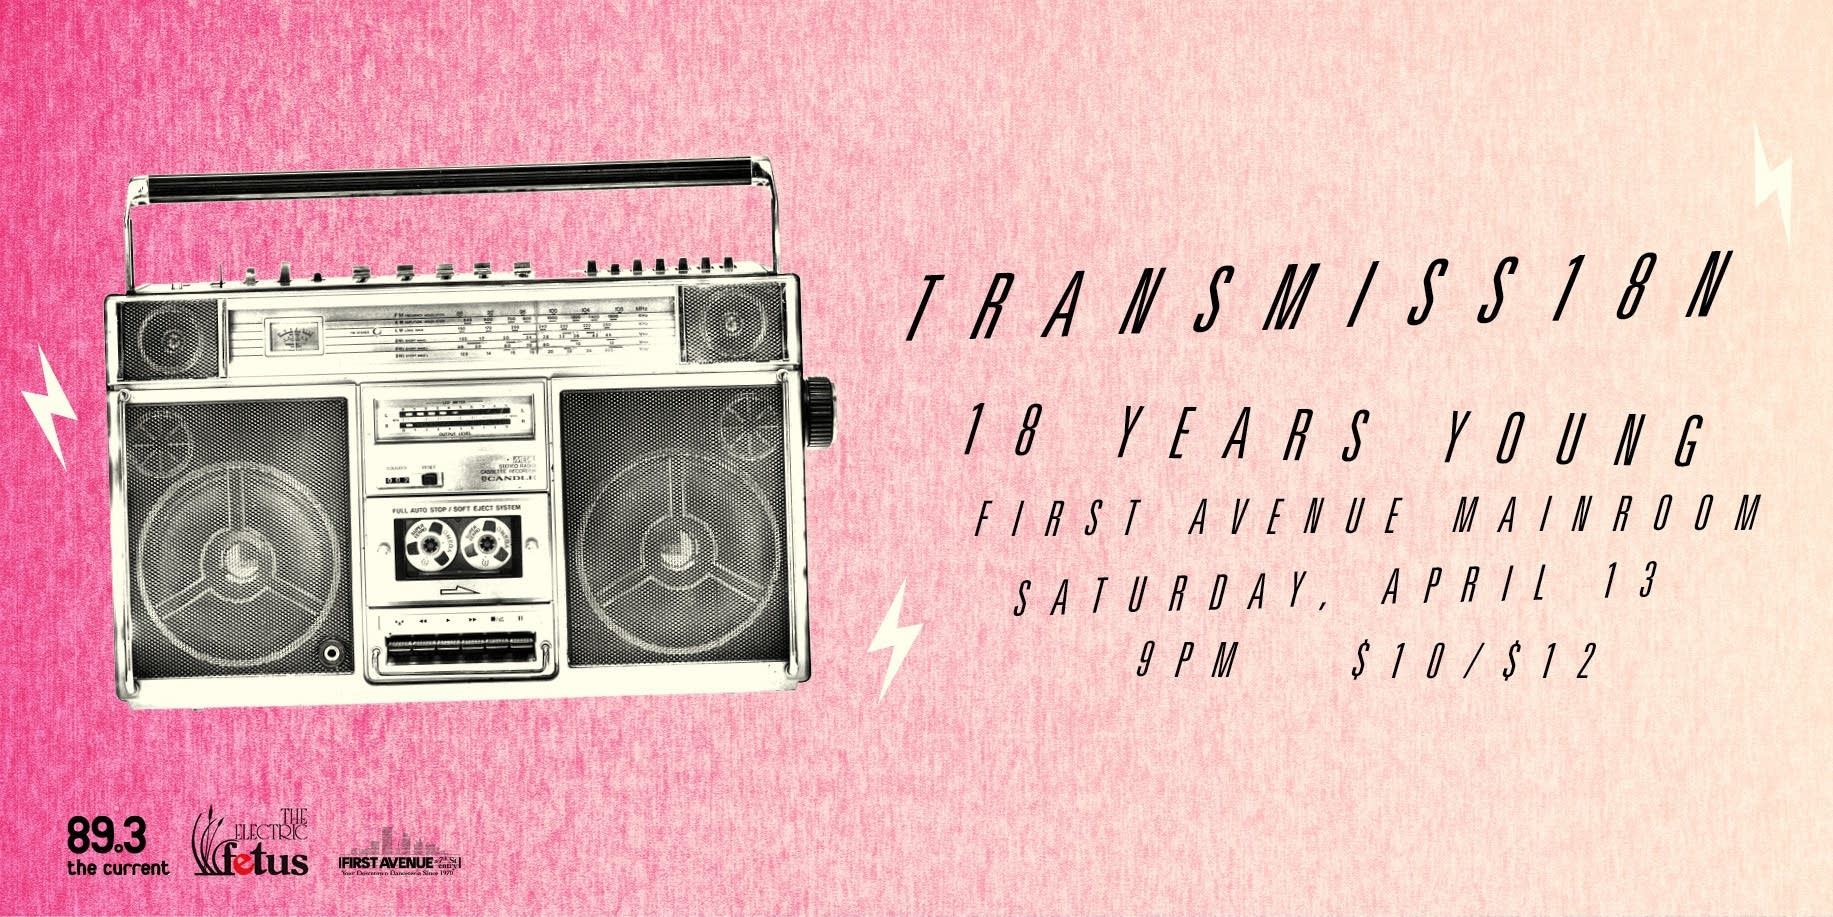 Transmission's 18th Anniversary artwork